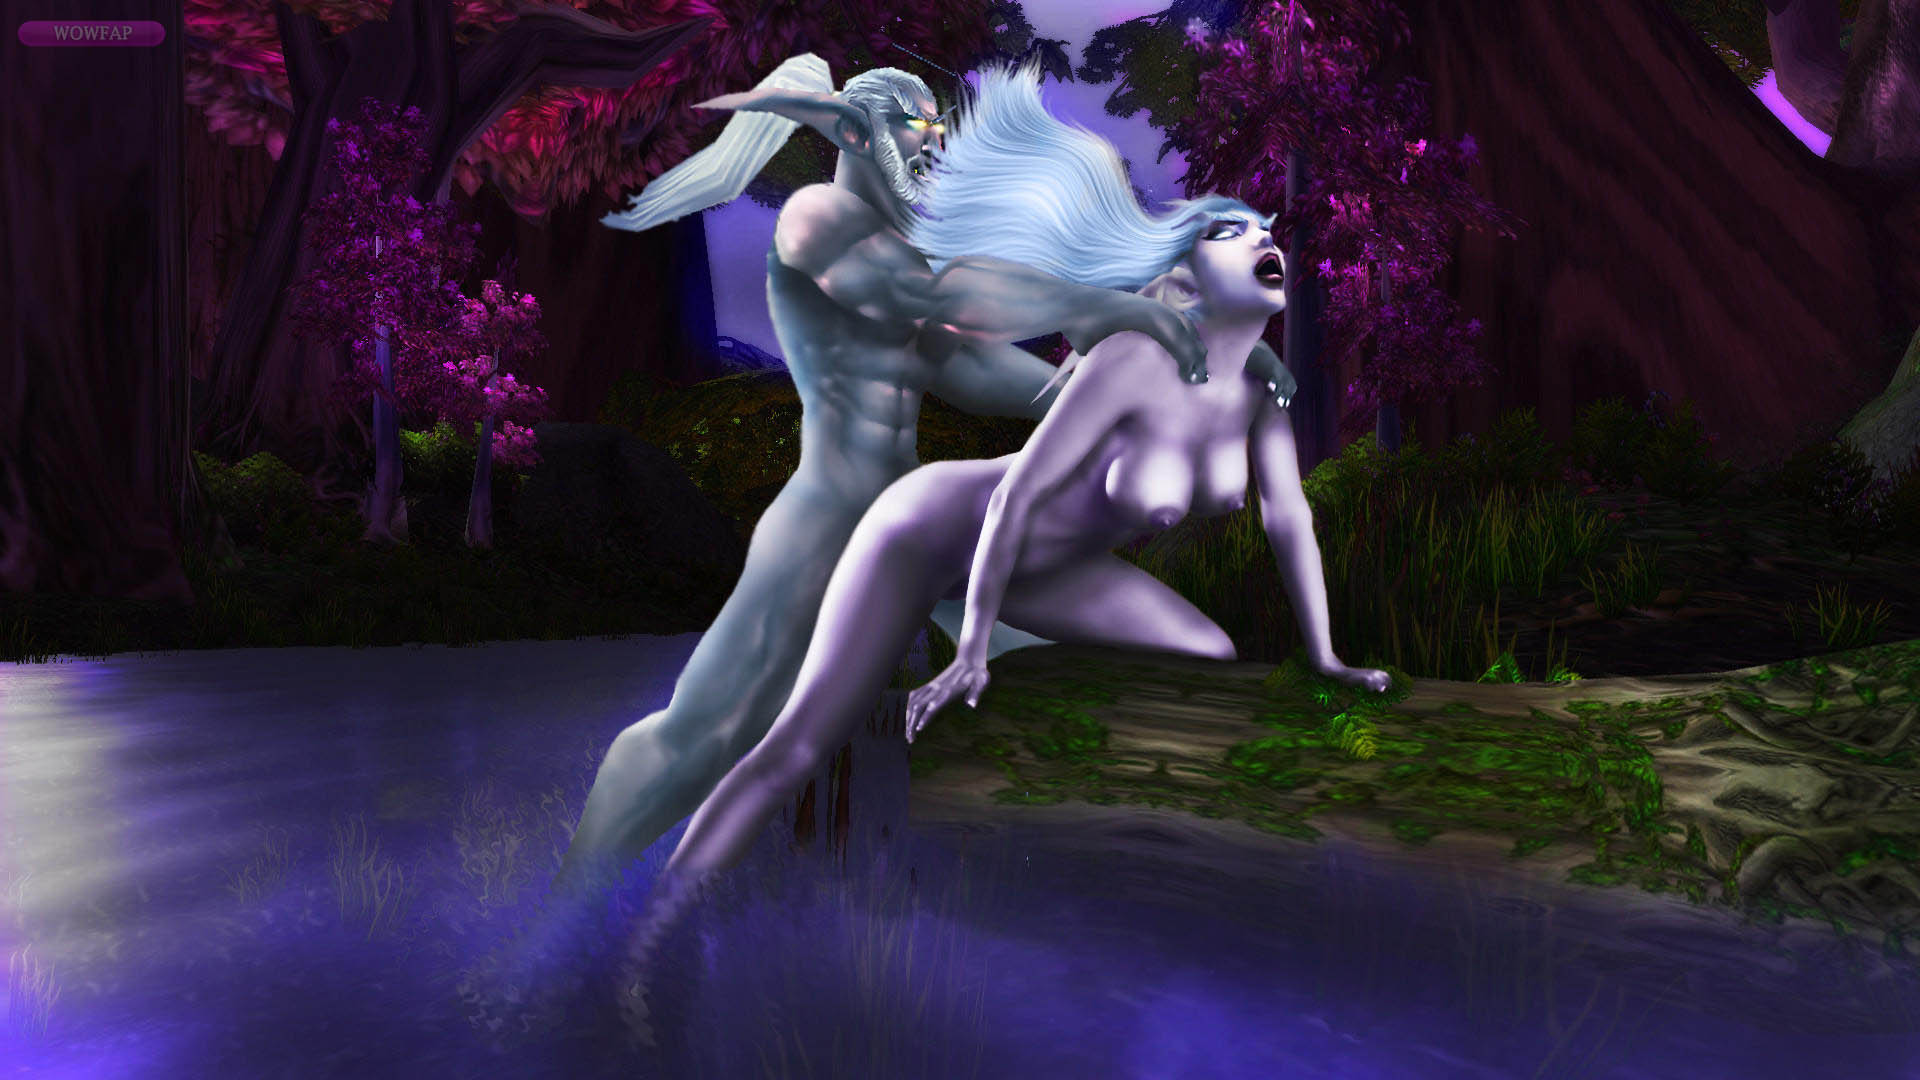 World of warcraft porn wallpaper porn picture